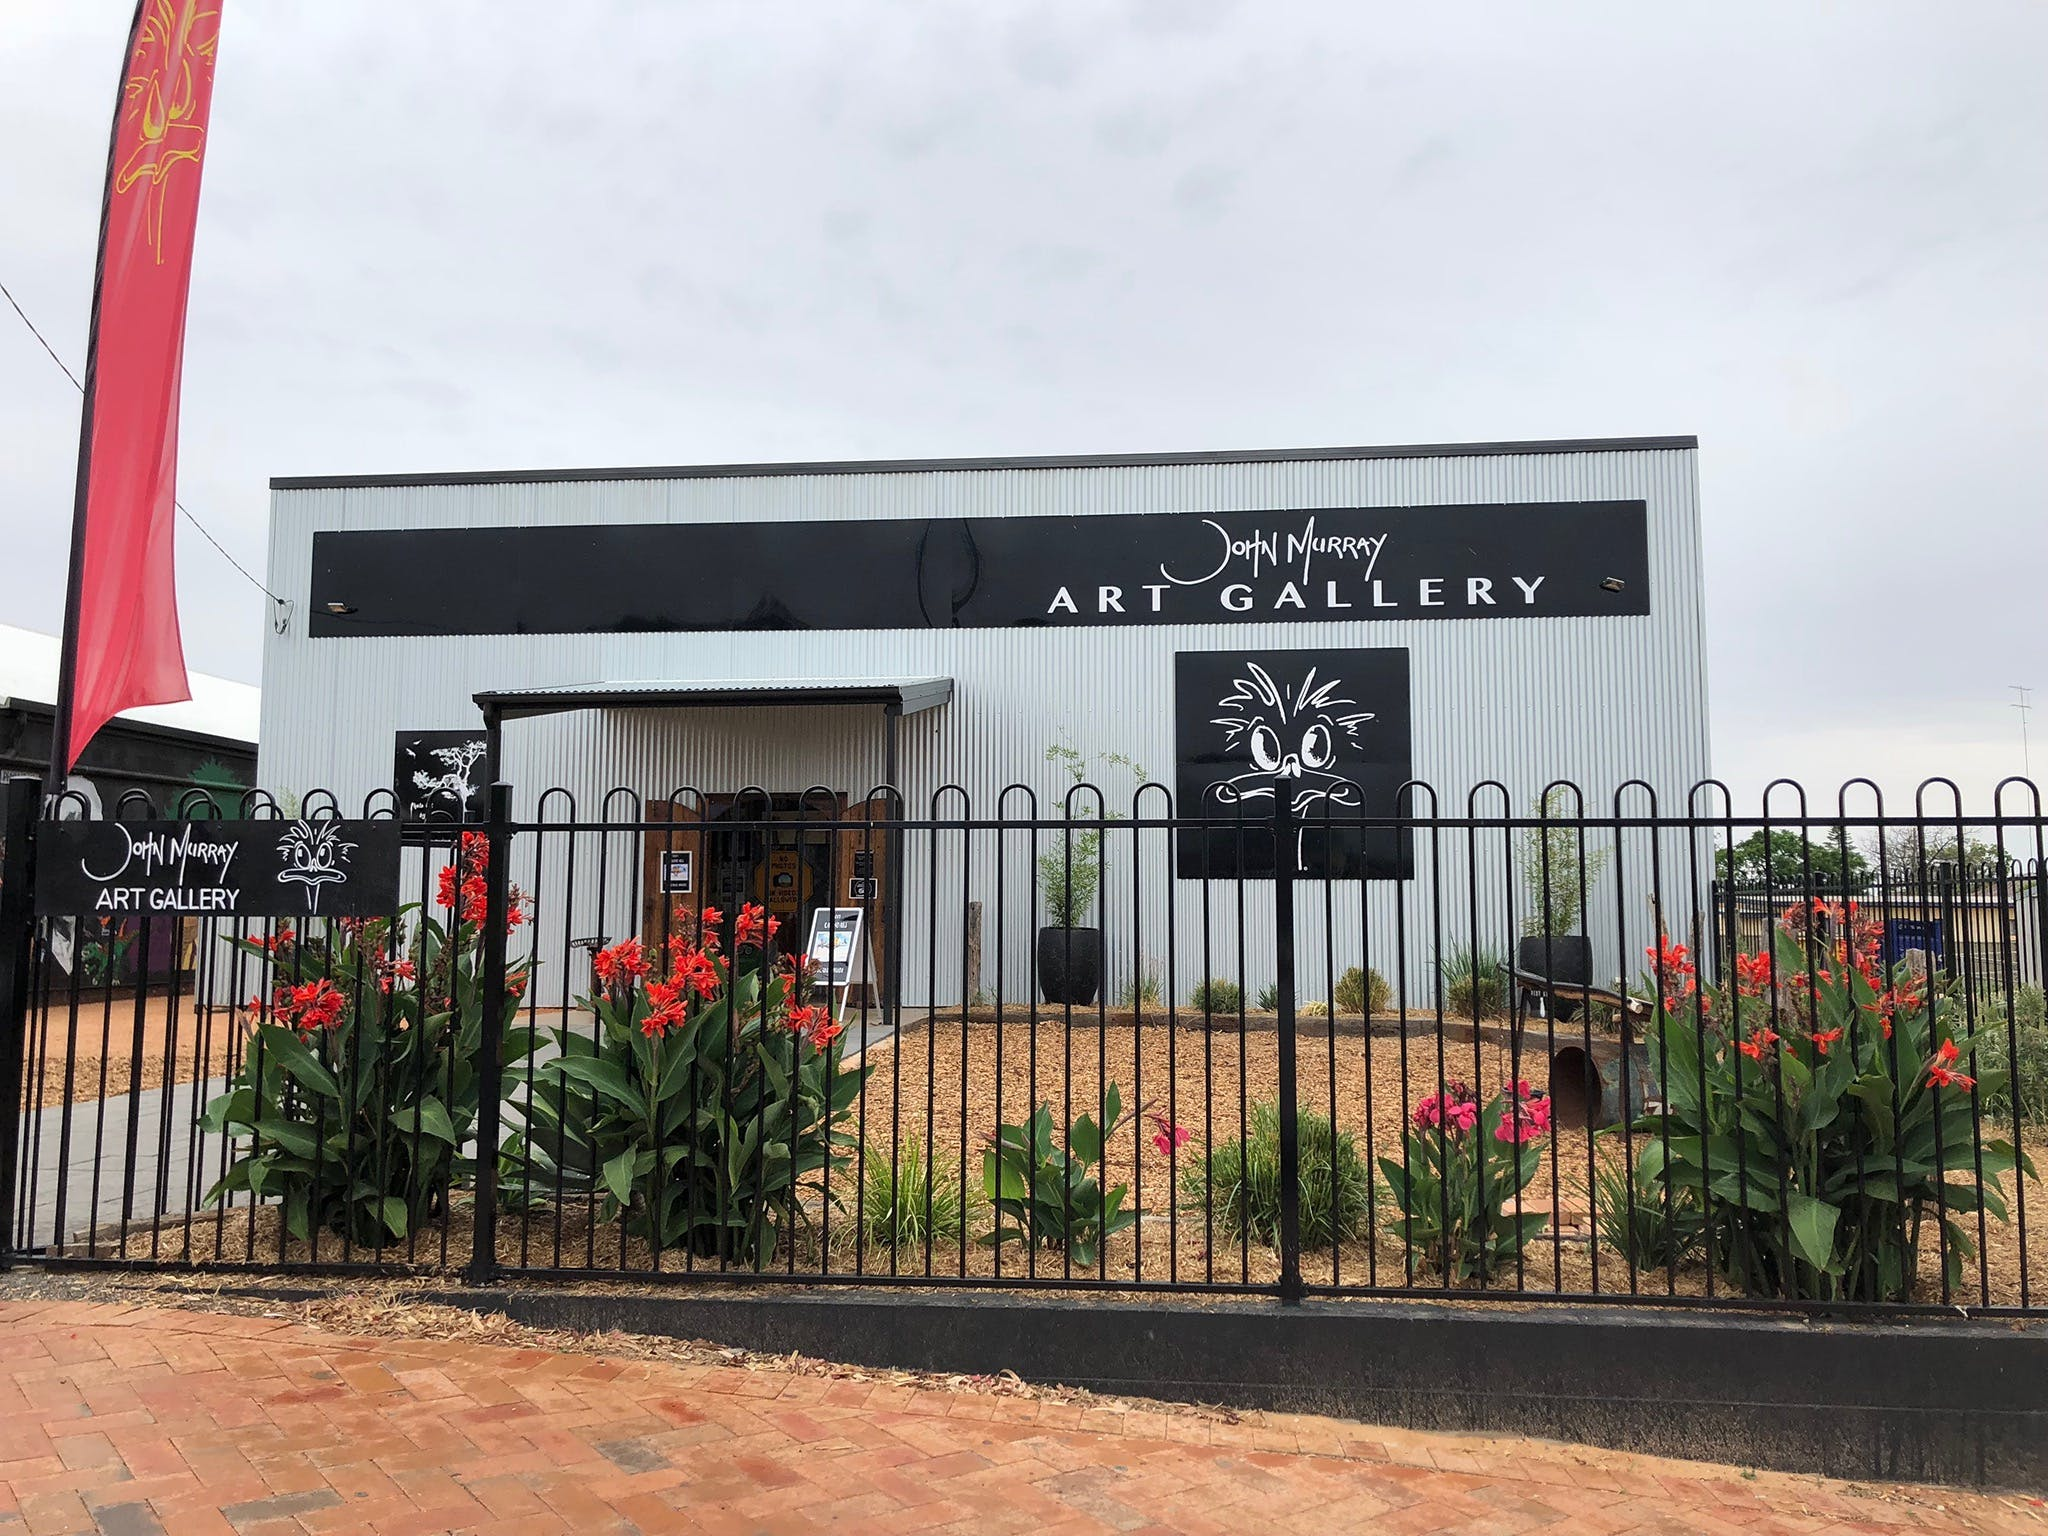 John Murray Art Gallery - Carnarvon Accommodation